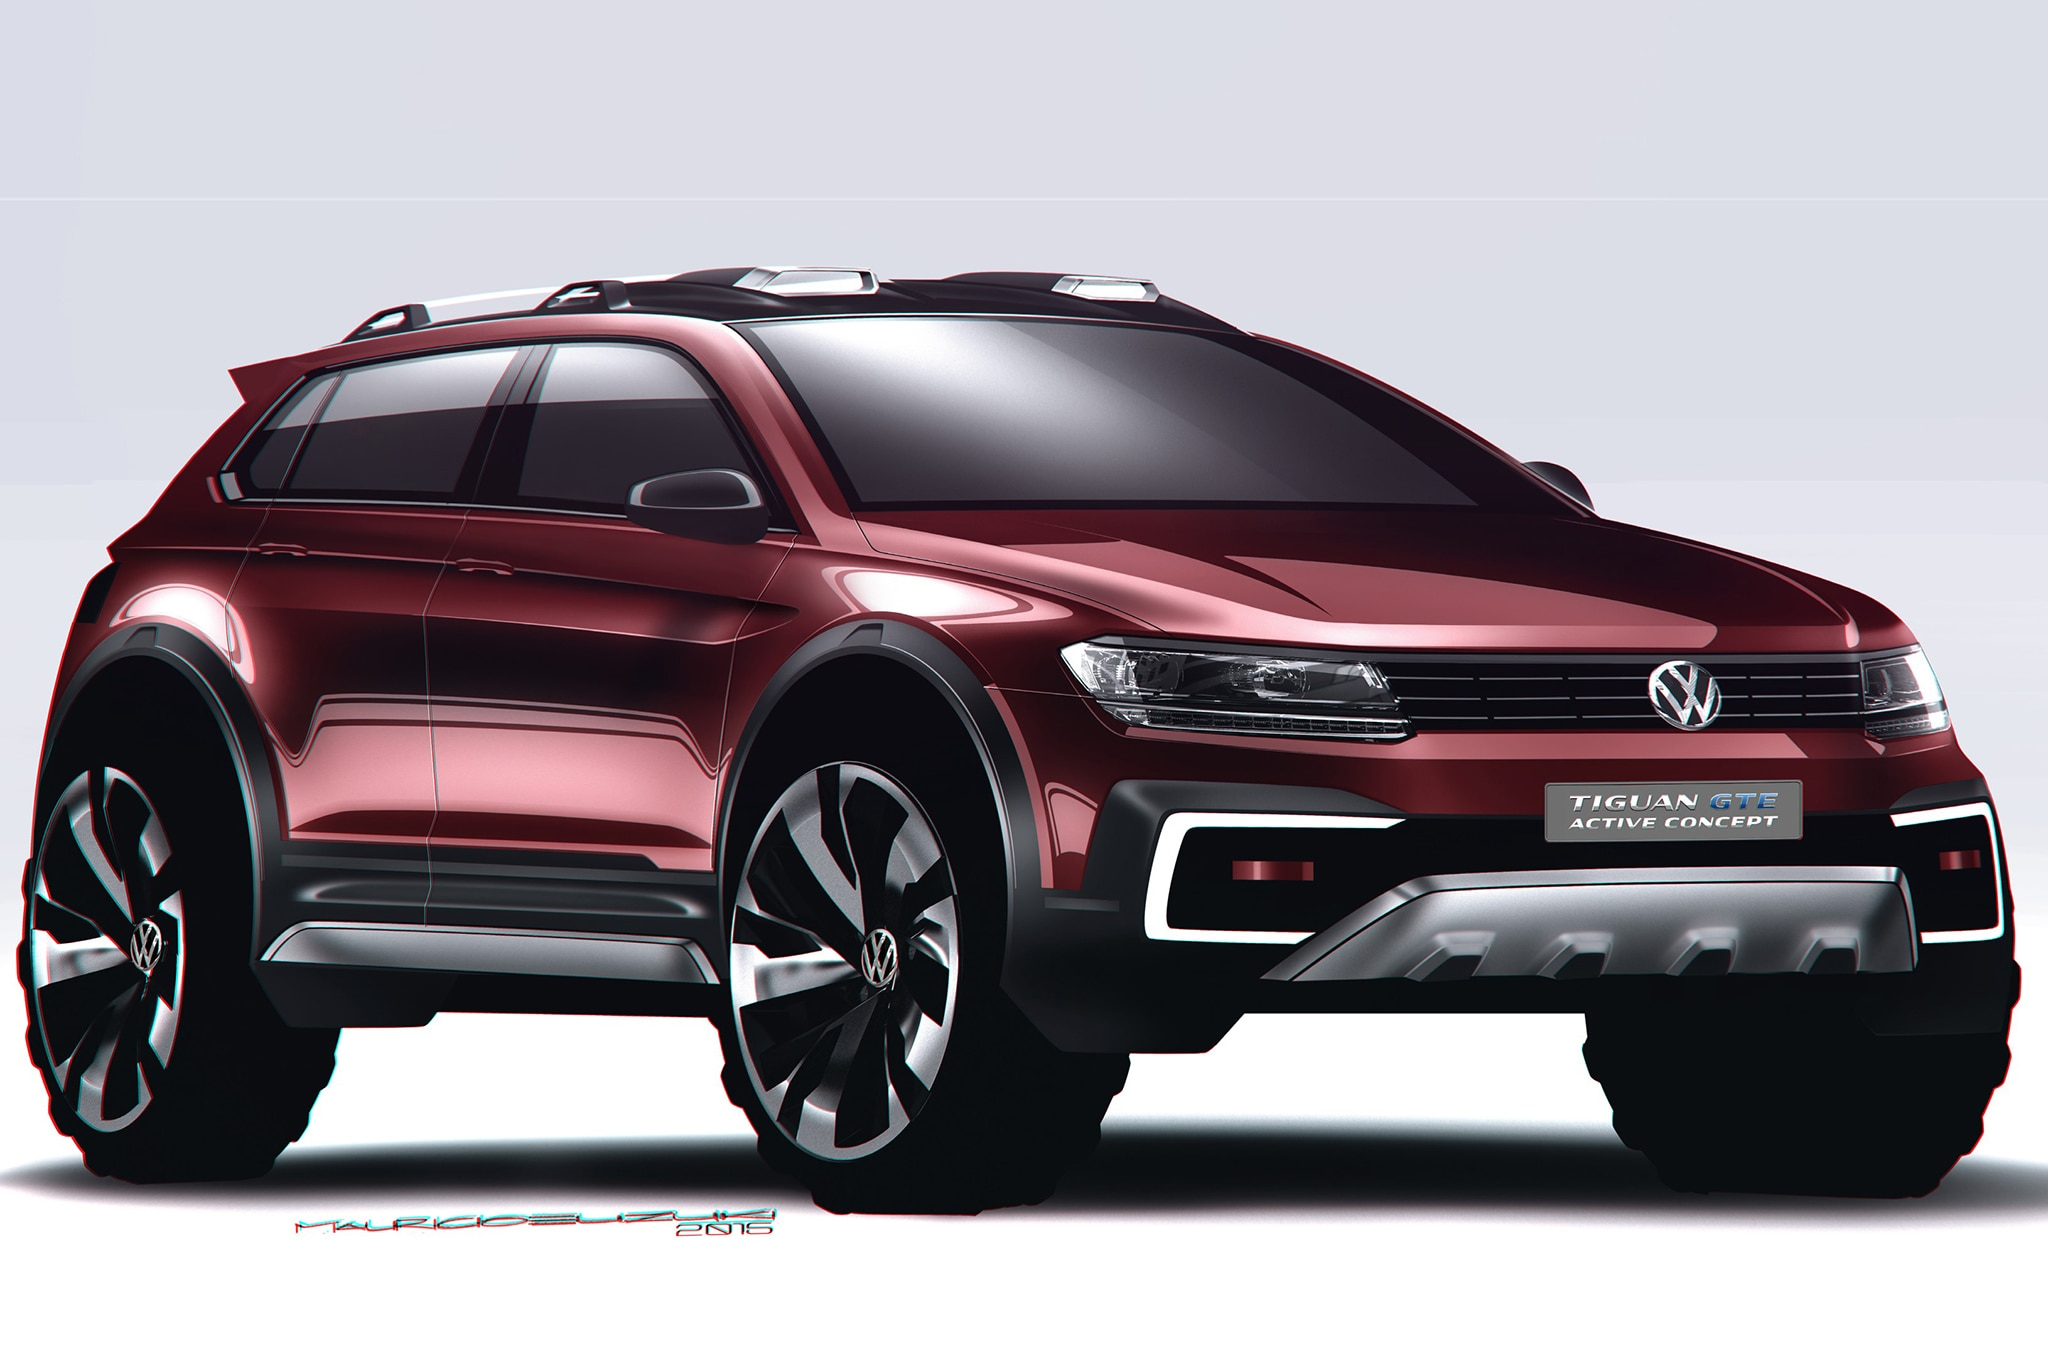 volkswagen tiguan gte active concept is an awd hybrid. Black Bedroom Furniture Sets. Home Design Ideas